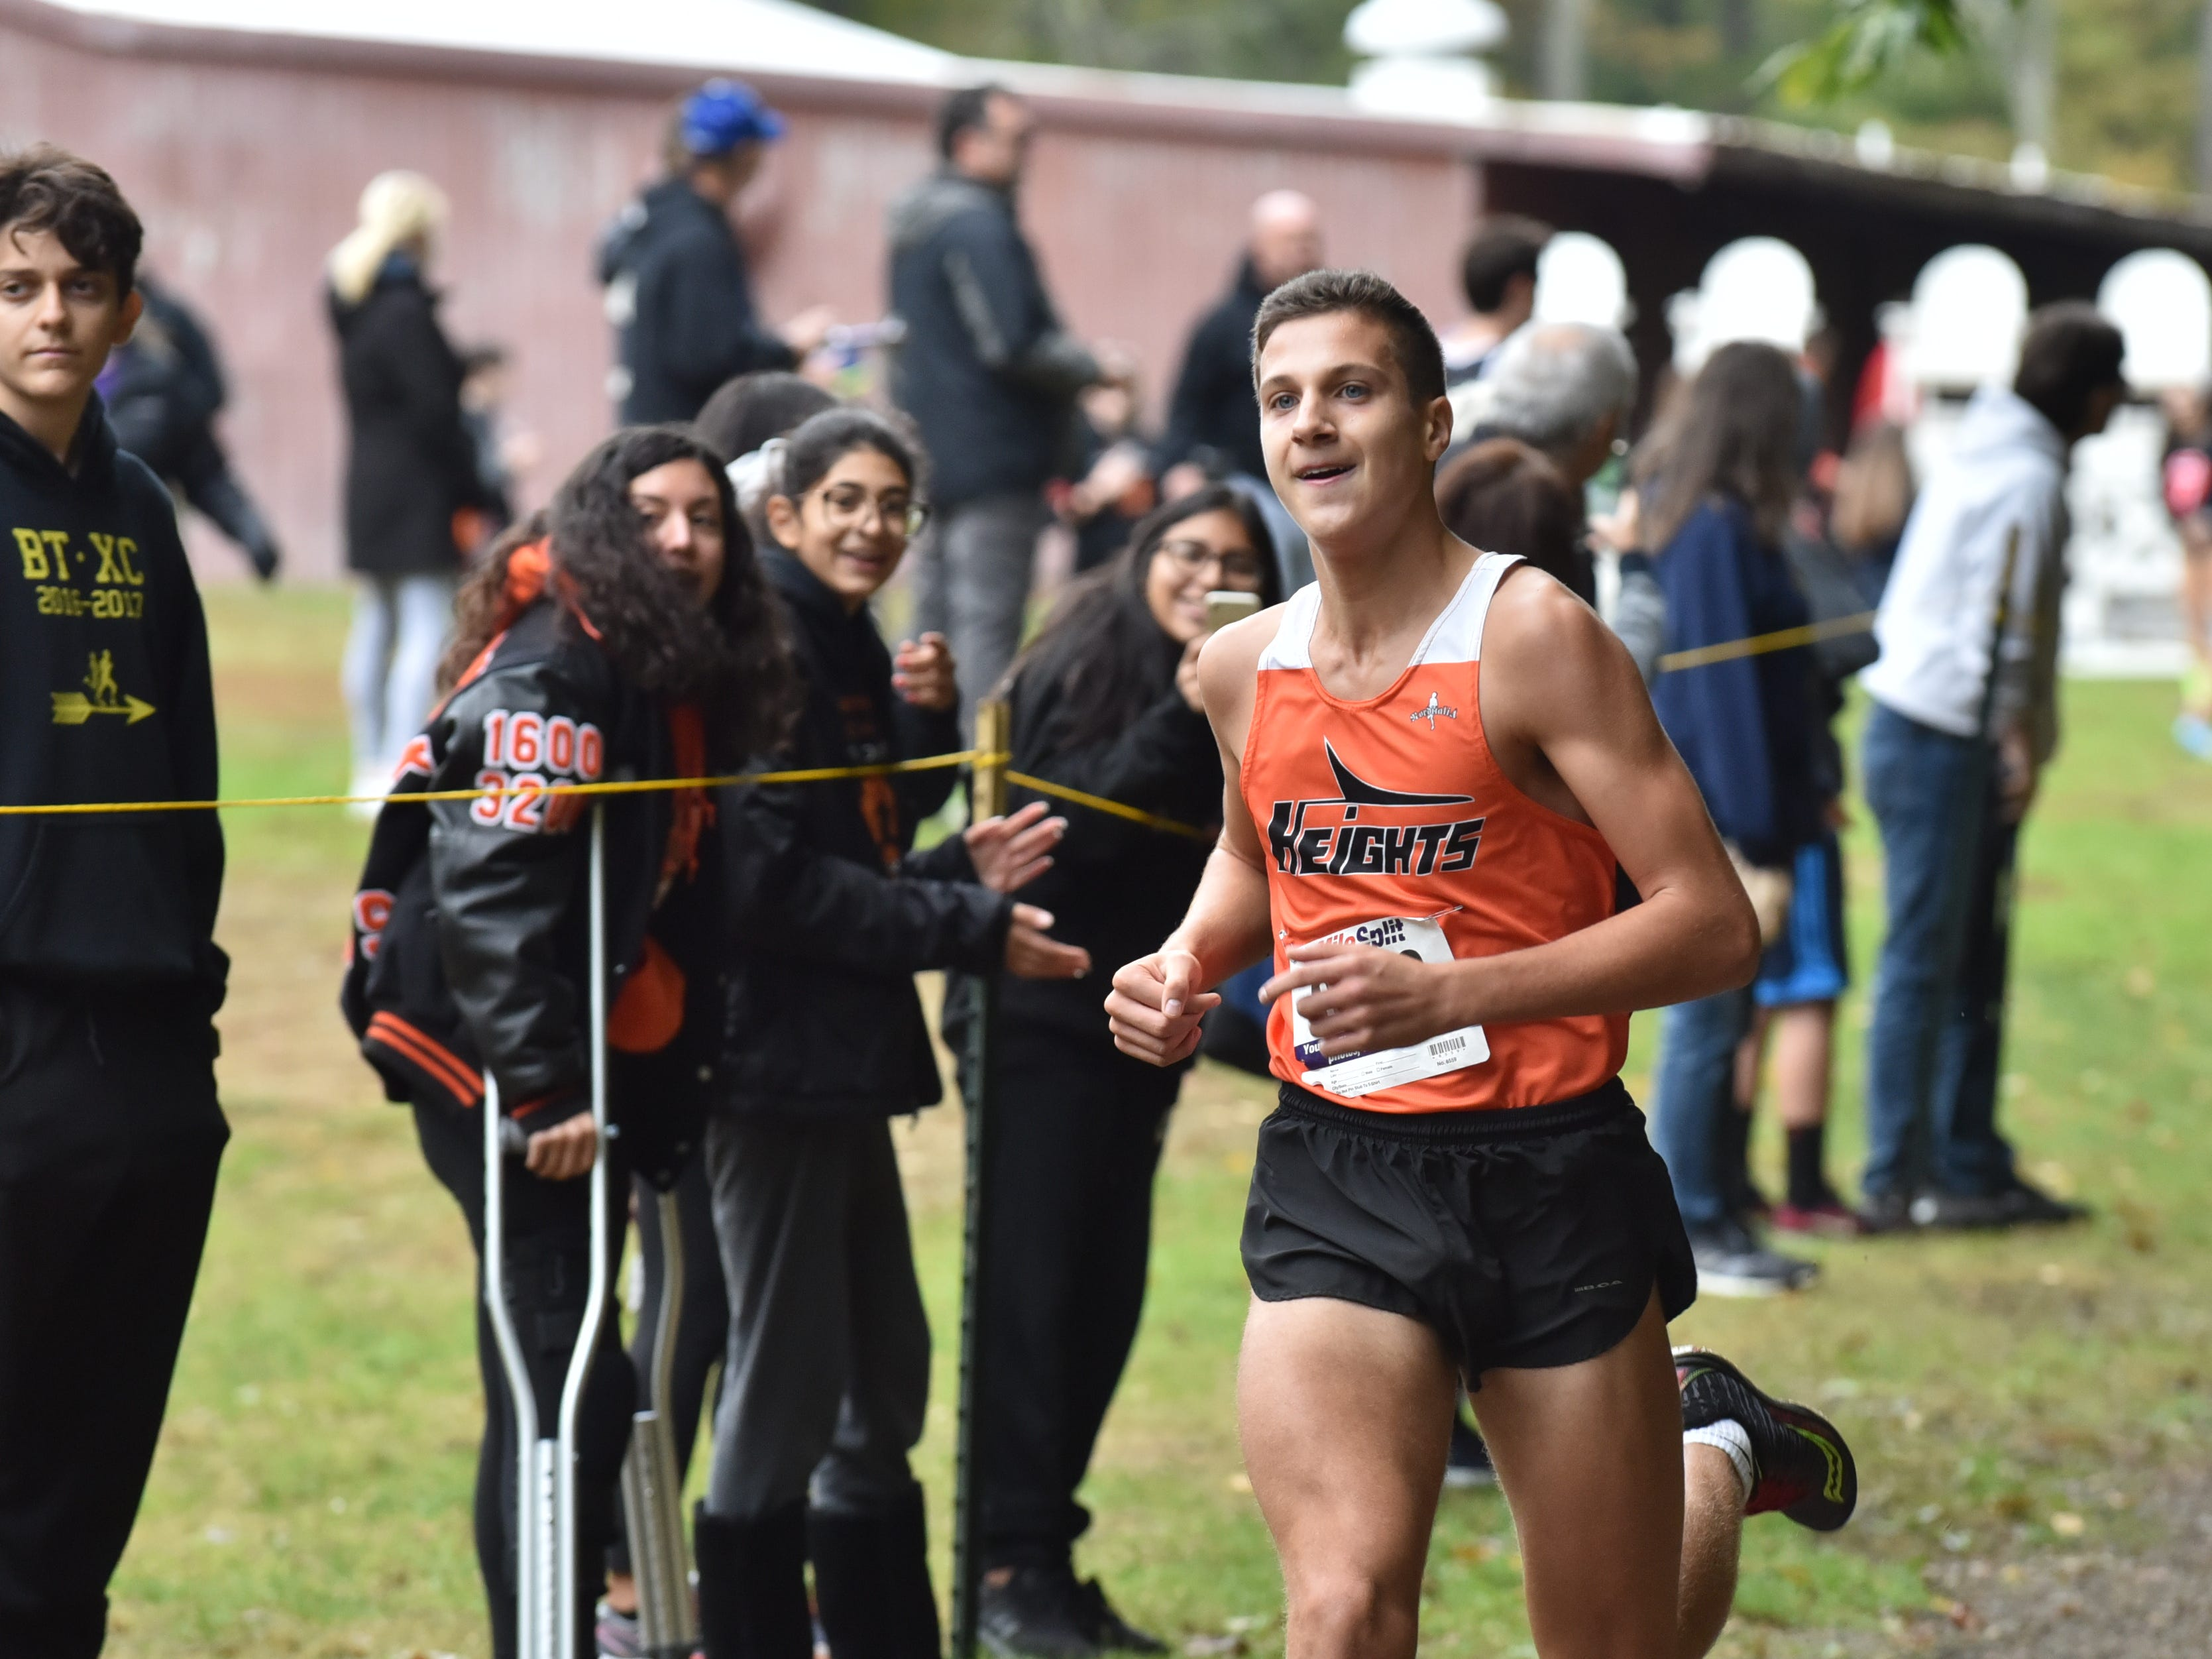 Jeremy Bailey of Hasbrouck Heights wins 3rd in Group D at the Bergen County Cross Country Championships.